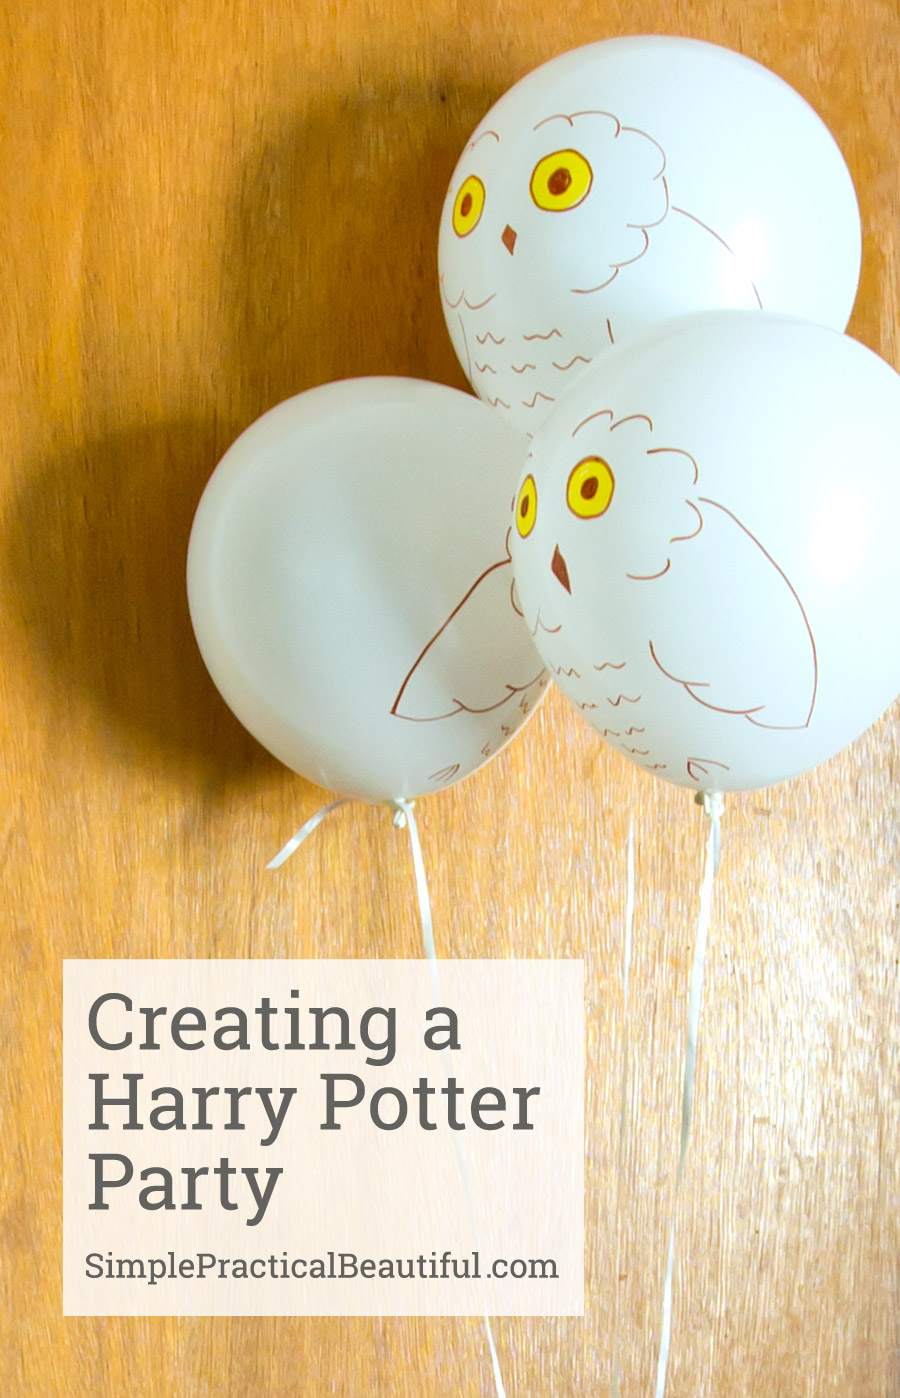 Harry Potter party with lots of fun ideas like owl invitations, recreation of Diagon Alley, Hogwarts Express, and Hogsmeade; plus game and food ideas and even a sorting hat